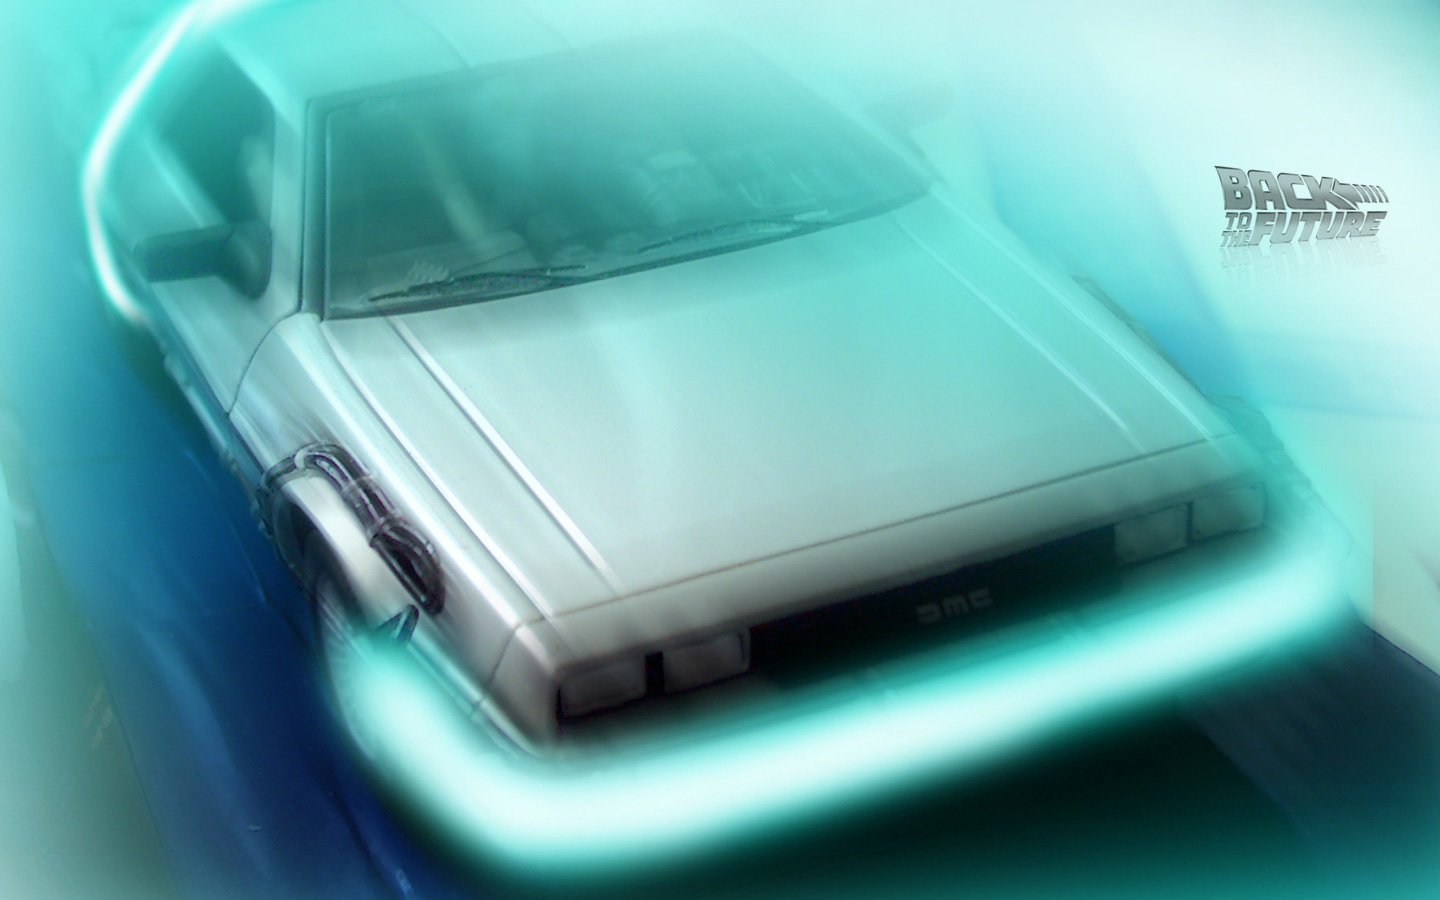 Back To The Future Wallpapers Hd For Desktop Backgrounds